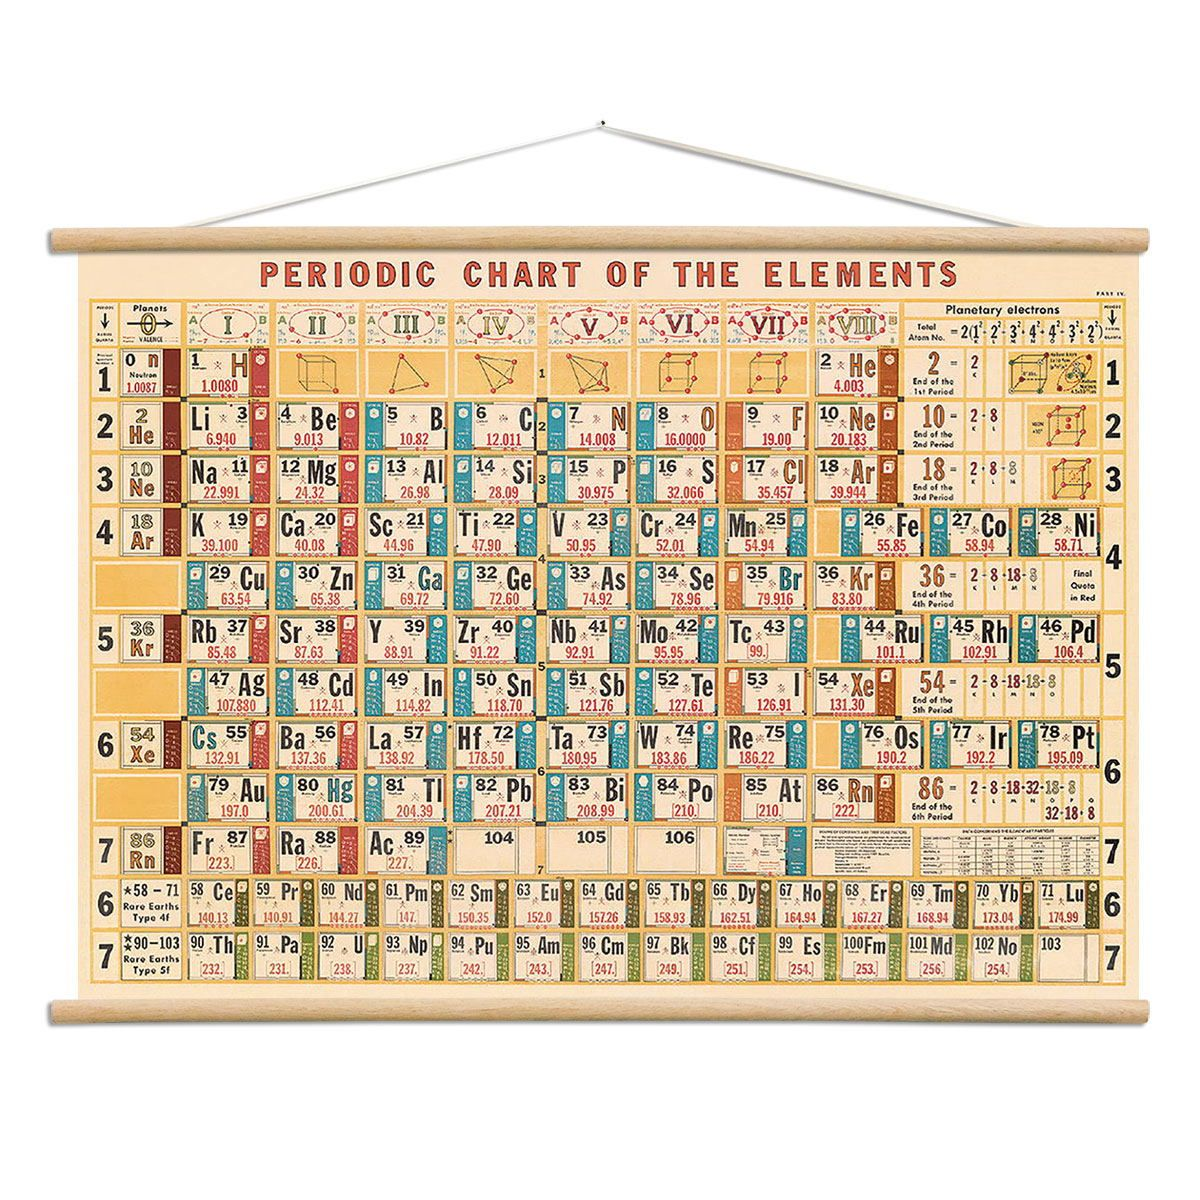 Periodic table vintage style chemistry poster hanger kit periodic table vintage style chemistry poster hanger kit gamestrikefo Choice Image